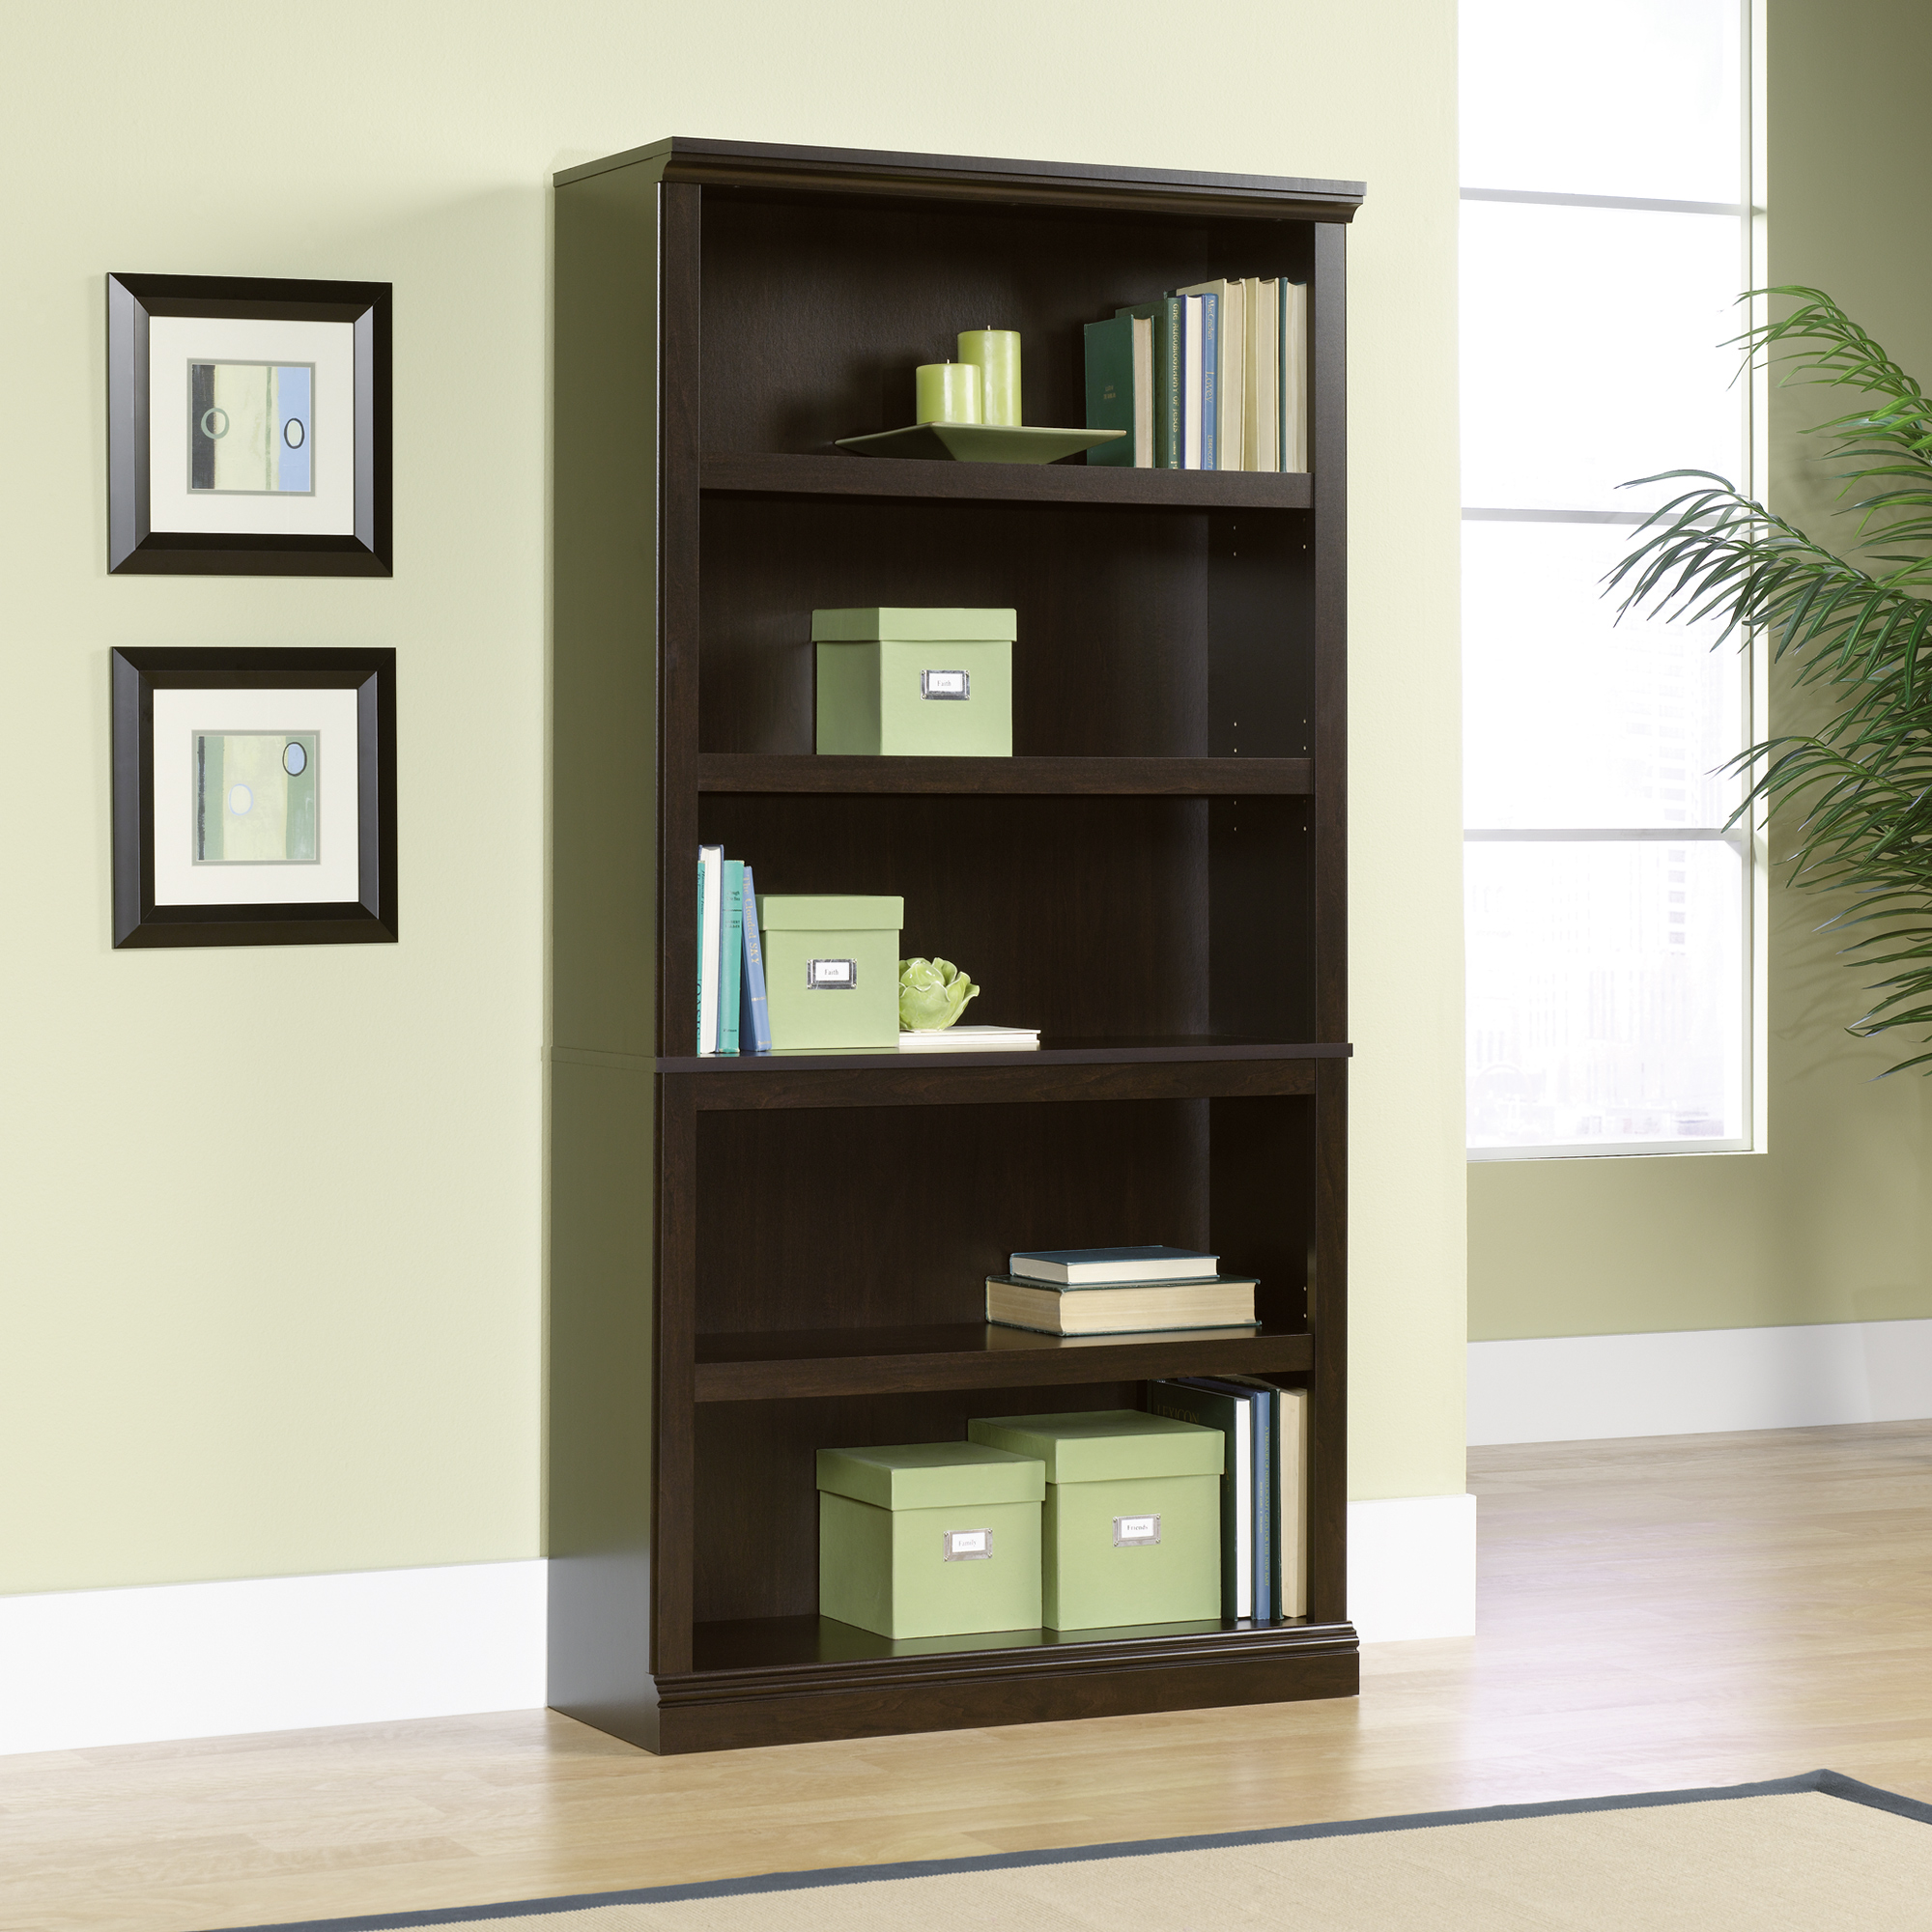 Fabulous design sauder bookcases with rugs and laminate flooring plus window treatments for Living Room Ideas